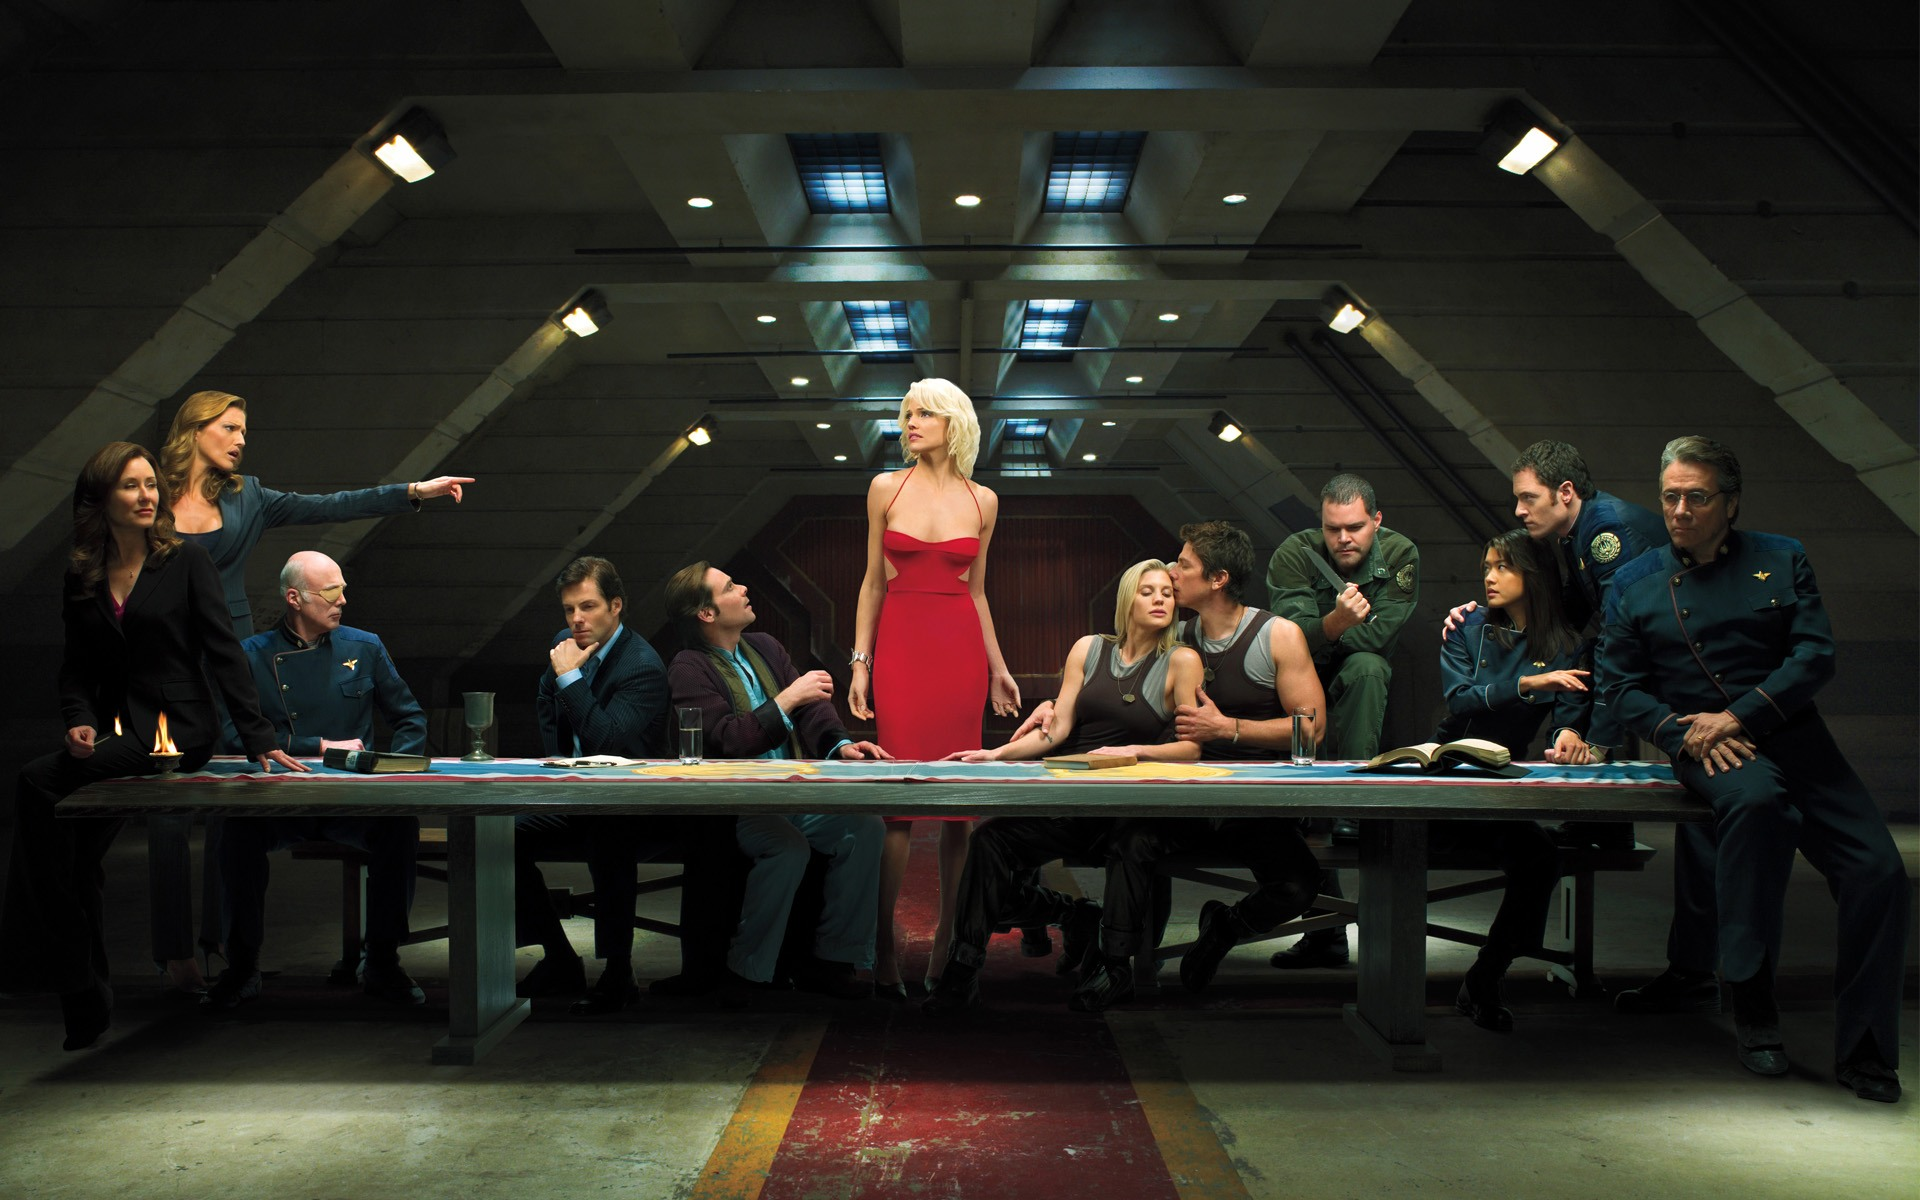 Battlestar Galactica Last Supper wallpaper 140163 1920x1200